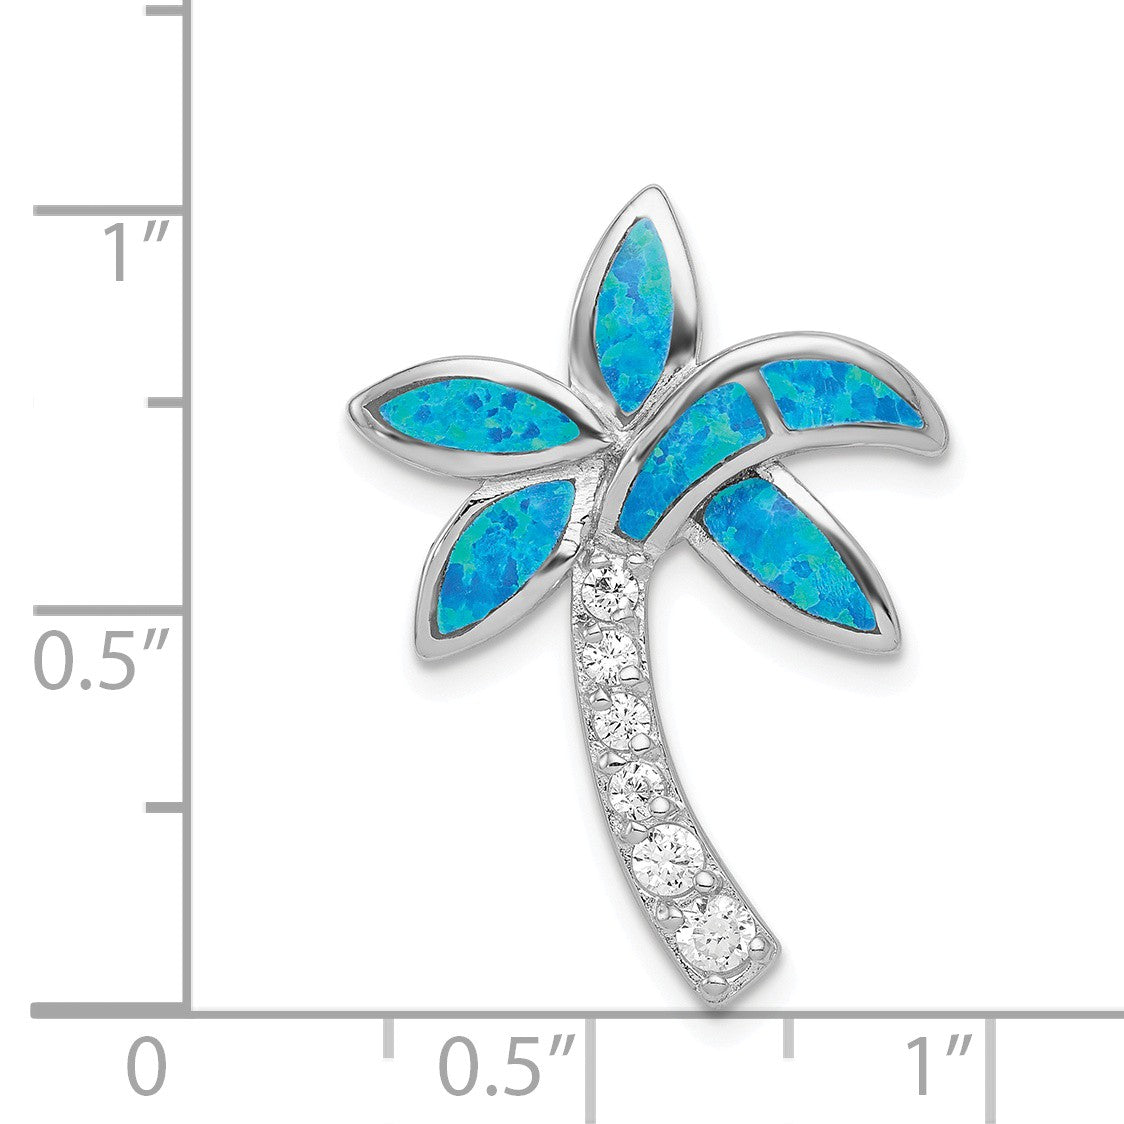 Alternate view of the Sterling Silver, Created Opal and Cubic Zirconia Palm Tree Pendant by The Black Bow Jewelry Co.